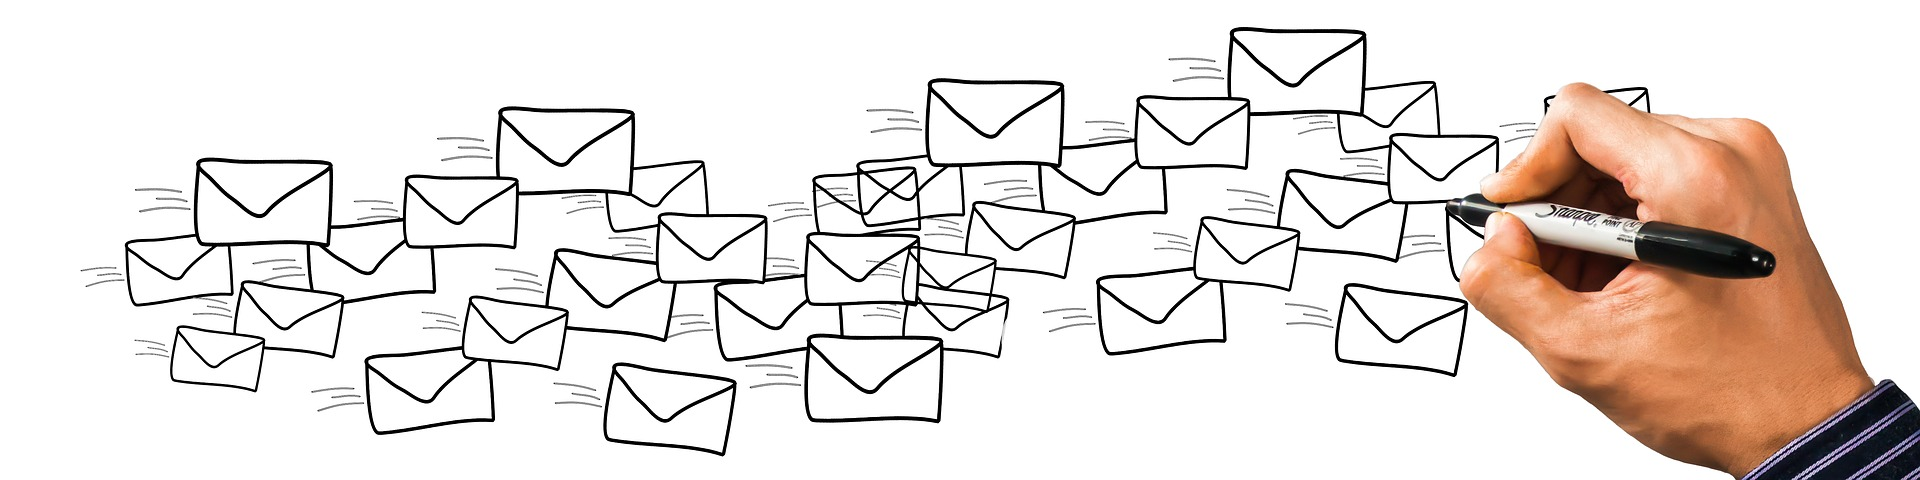 Email Marketing Volumne